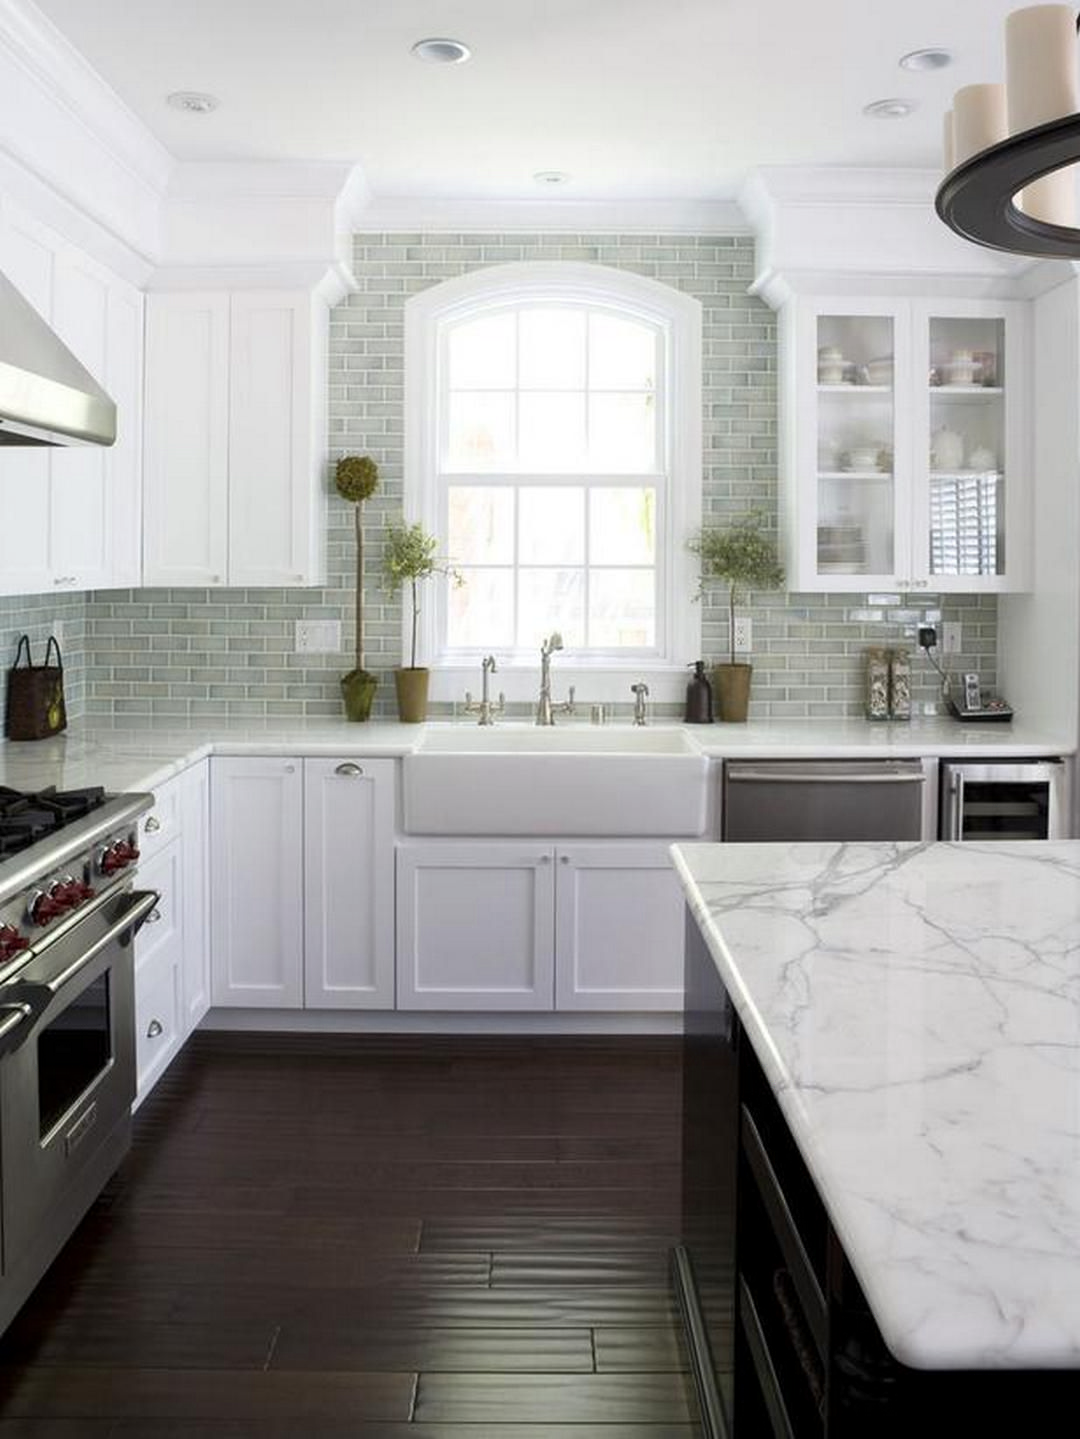 53 Pretty White Kitchen Design Ideas | Gorgeous Interior Ideas ... on mexican style home kitchen ideas, pinterest decorating mantels with baskets, mexican style home decor ideas, kitchen decorating ideas, pinterest wall decor ideas, pinterest home decorating ideas, pinterest bathroom decor ideas, pinterest french country decor, pinterest shabby chic decorating, pinterest corrugated tin ideas, pinterest kitchen remodel, pinterest winter porch ideas, kitchen paint ideas, long kitchen ideas, pinterest country decor kitchen, distressed wood kitchen ideas, pinterest home projects, gray kitchen ideas, pinterest patio ideas home, pinterest wall decor kitchen,